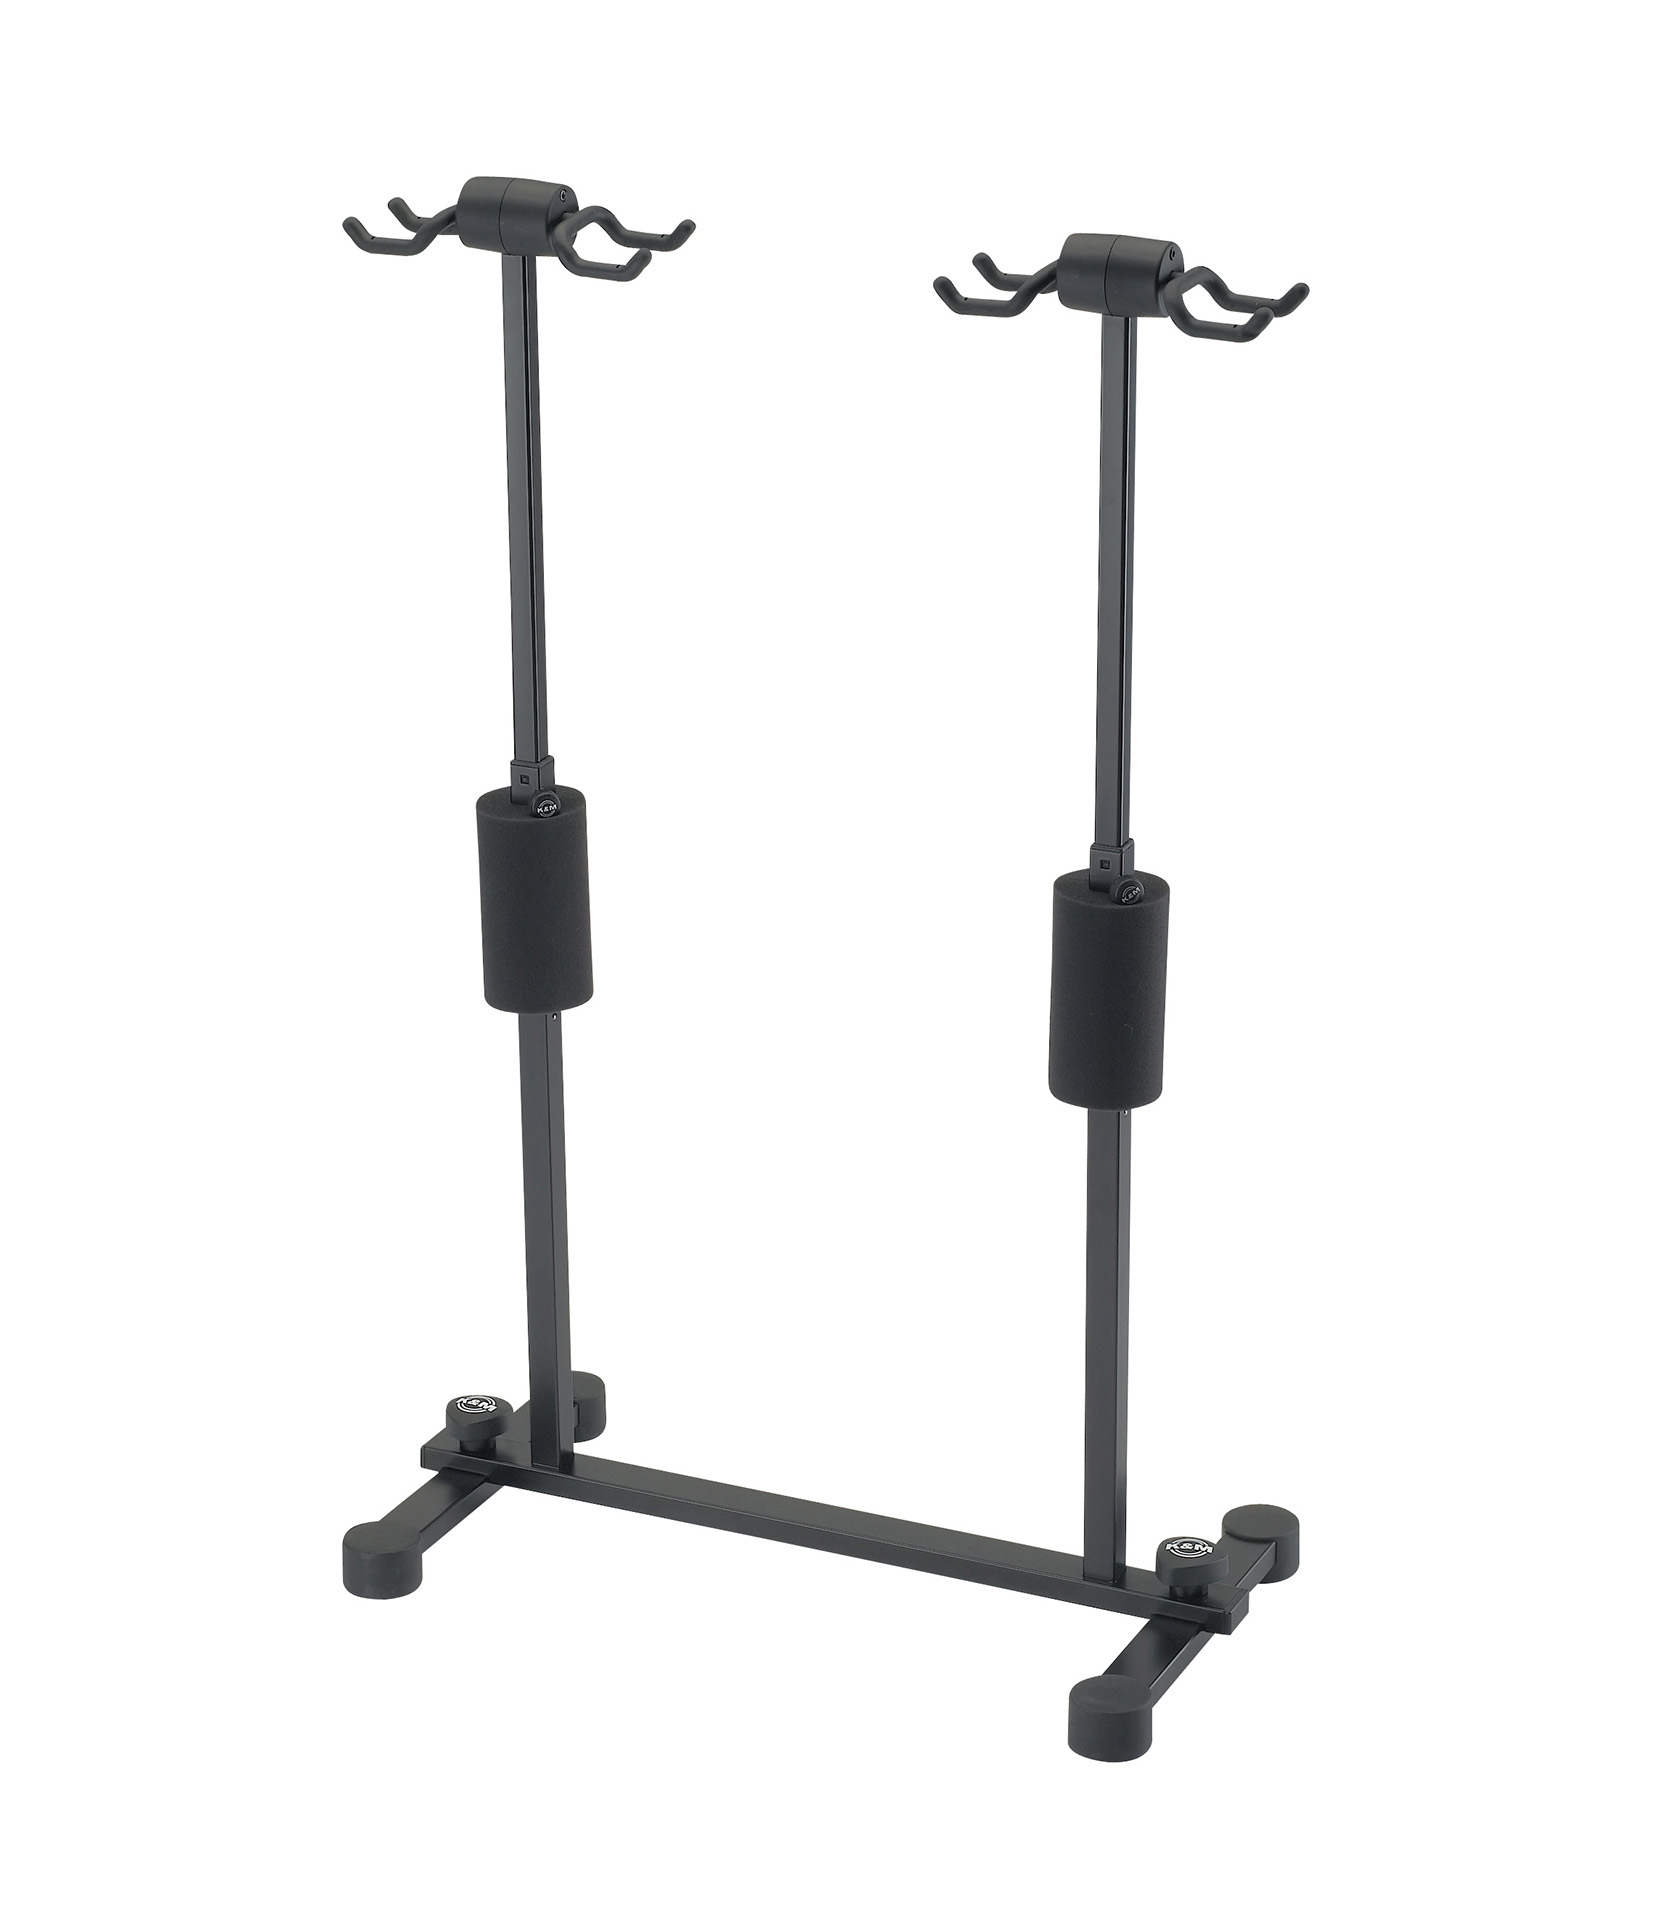 Buy K&M - 17604 000 55 Four Guitar Stand Roadie Black